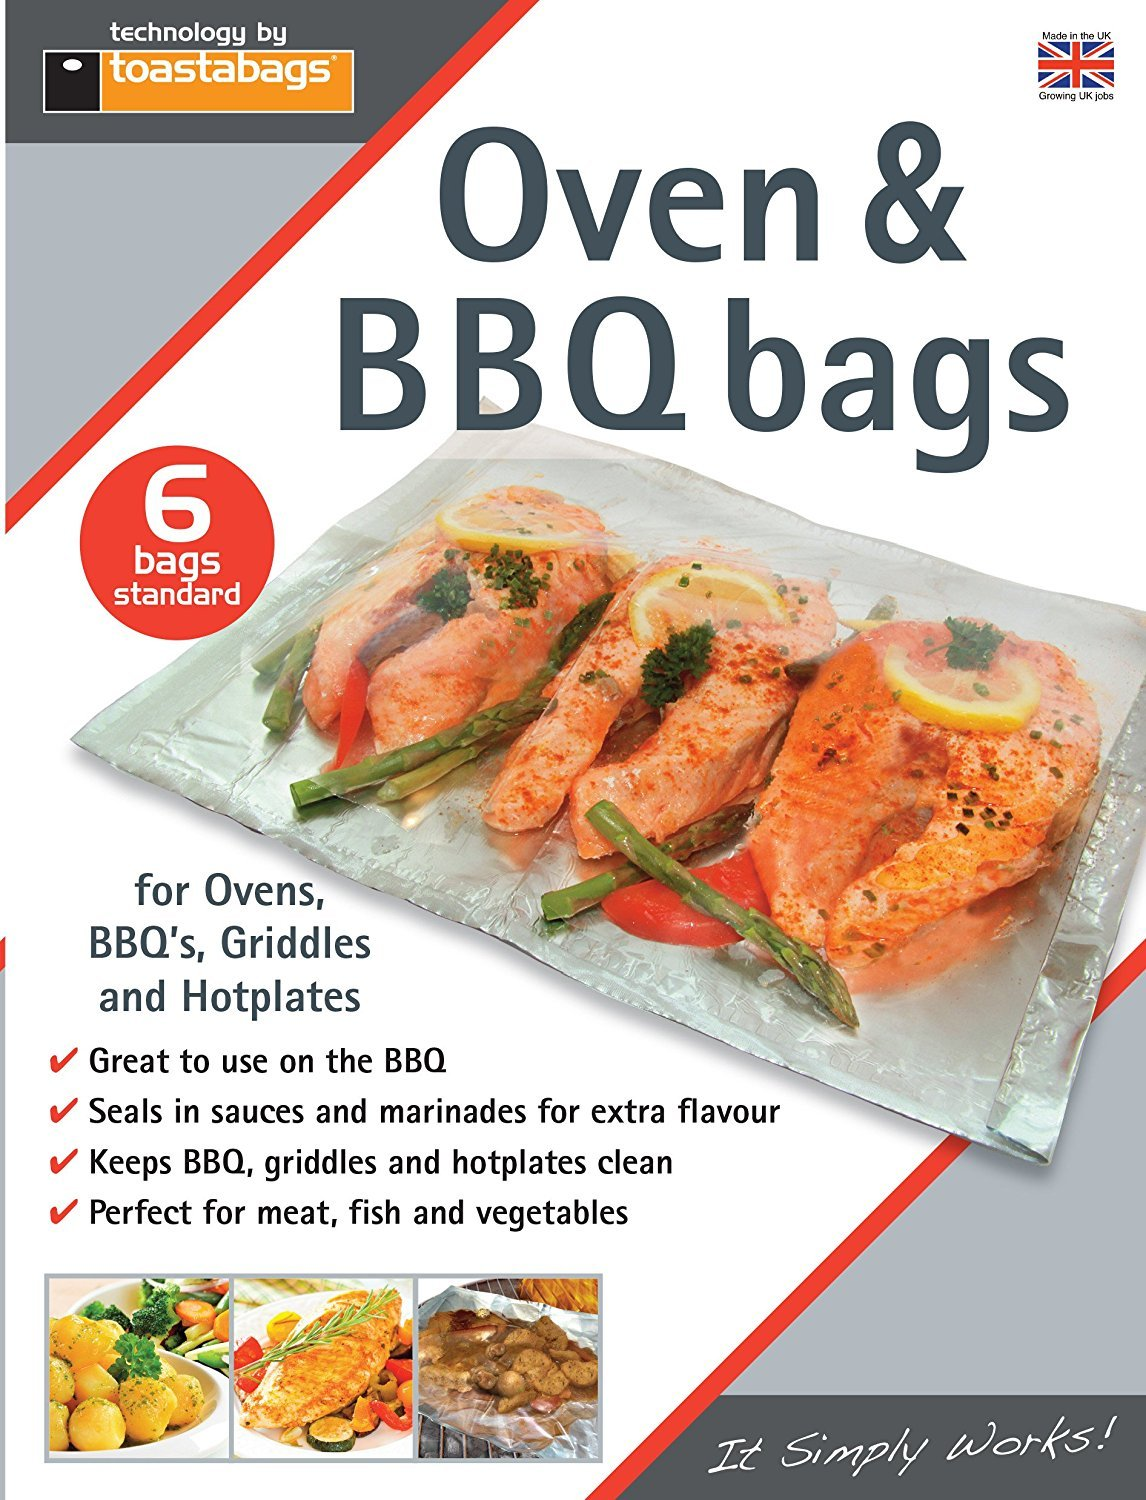 Pack of 6 Oven and BBQ Bags